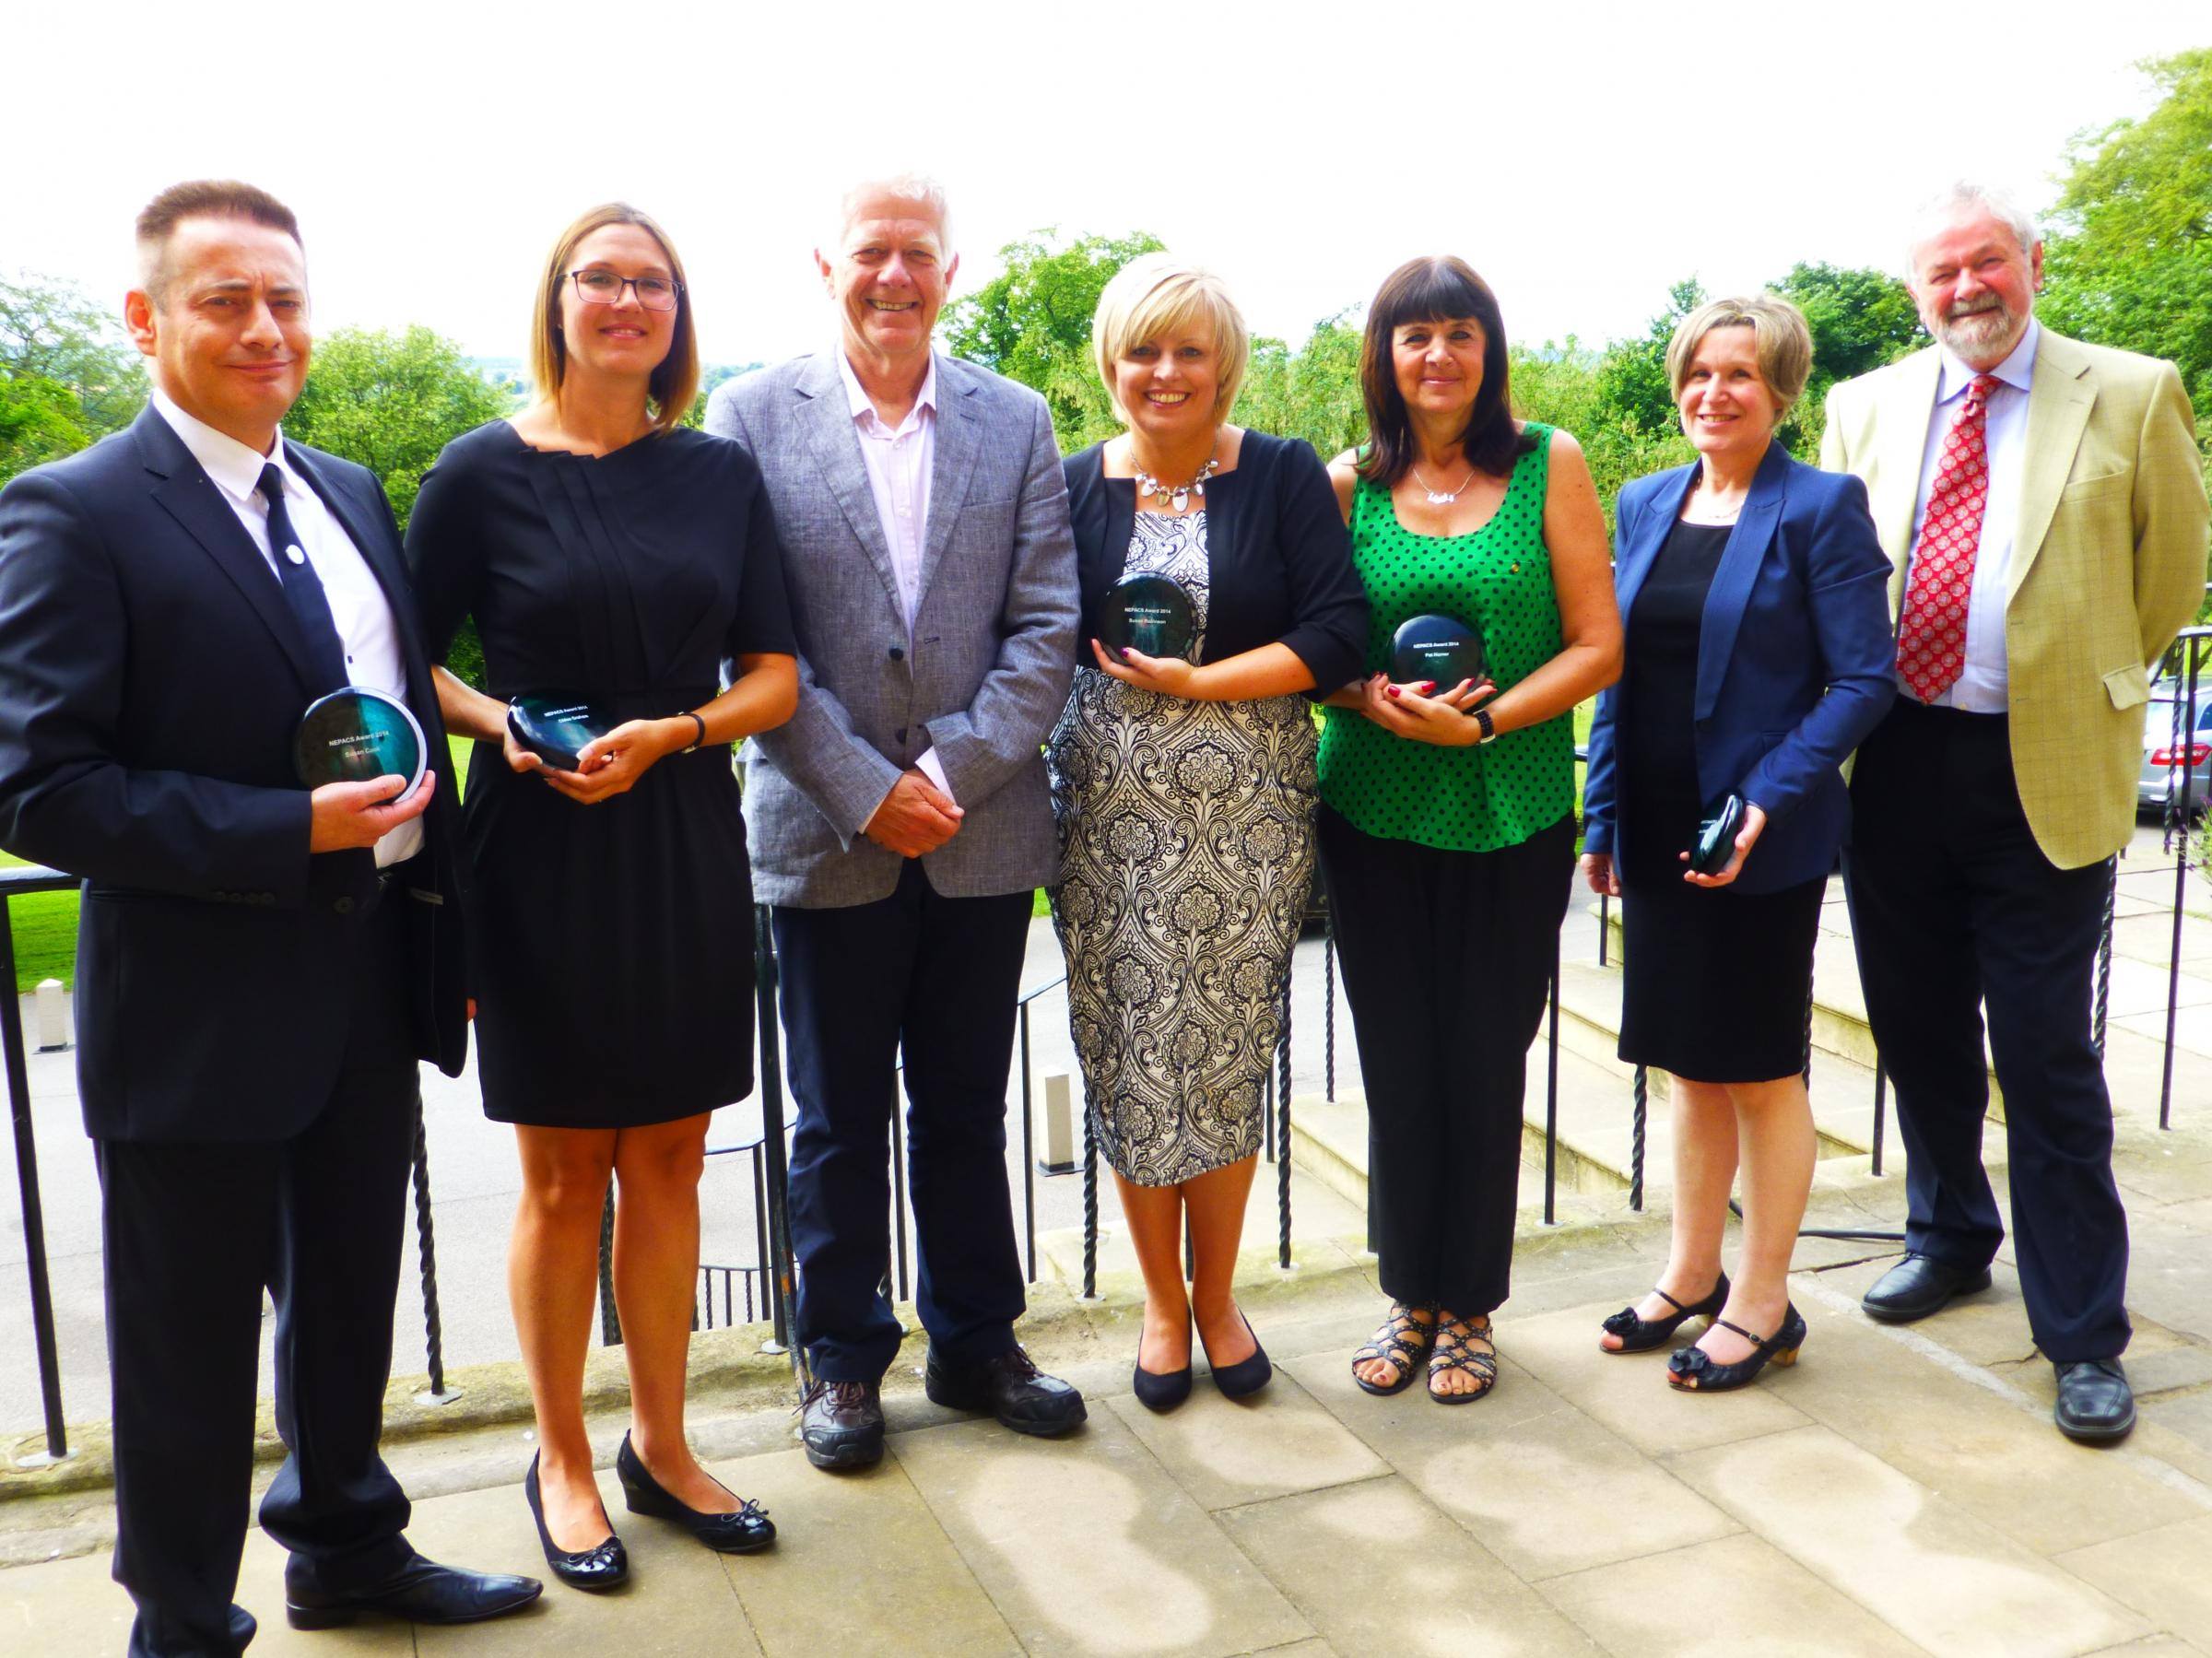 From left to right: Mick Hogg (representing Susan Cook from Durham Tees Valley Probation Trust), Chloe Graham (learning and skills manager at HMP Holme House), Clive Martin (Director of CLINKS), Susan Robinson (HMP Frankland), Pat Horner and Debra Middlet